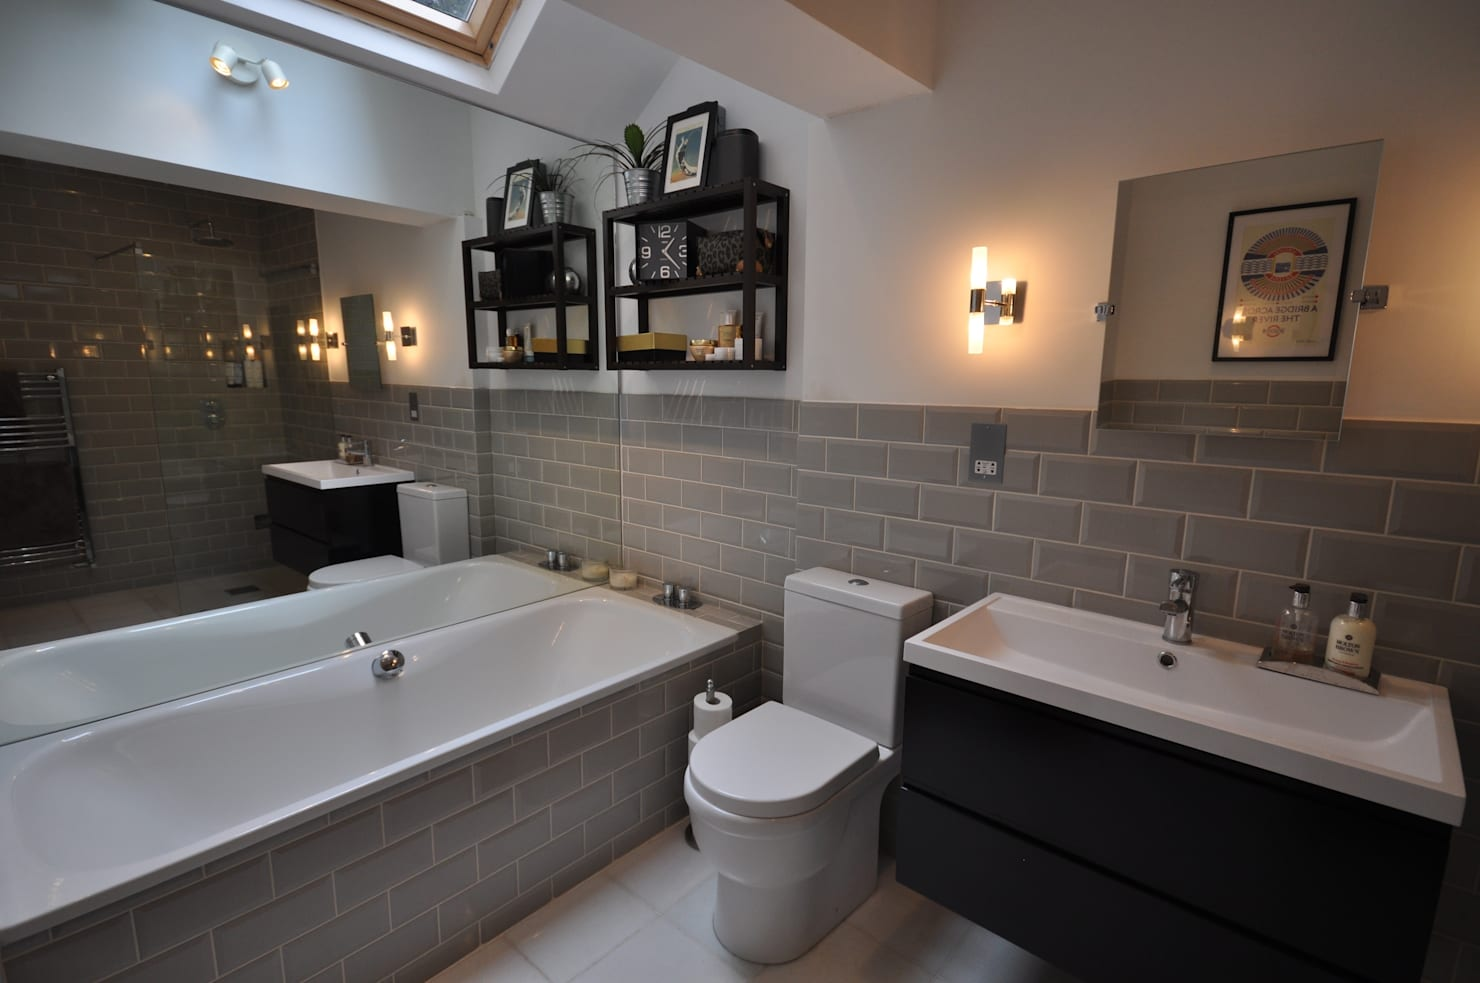 25 special bathrooms to give you ideas for your home